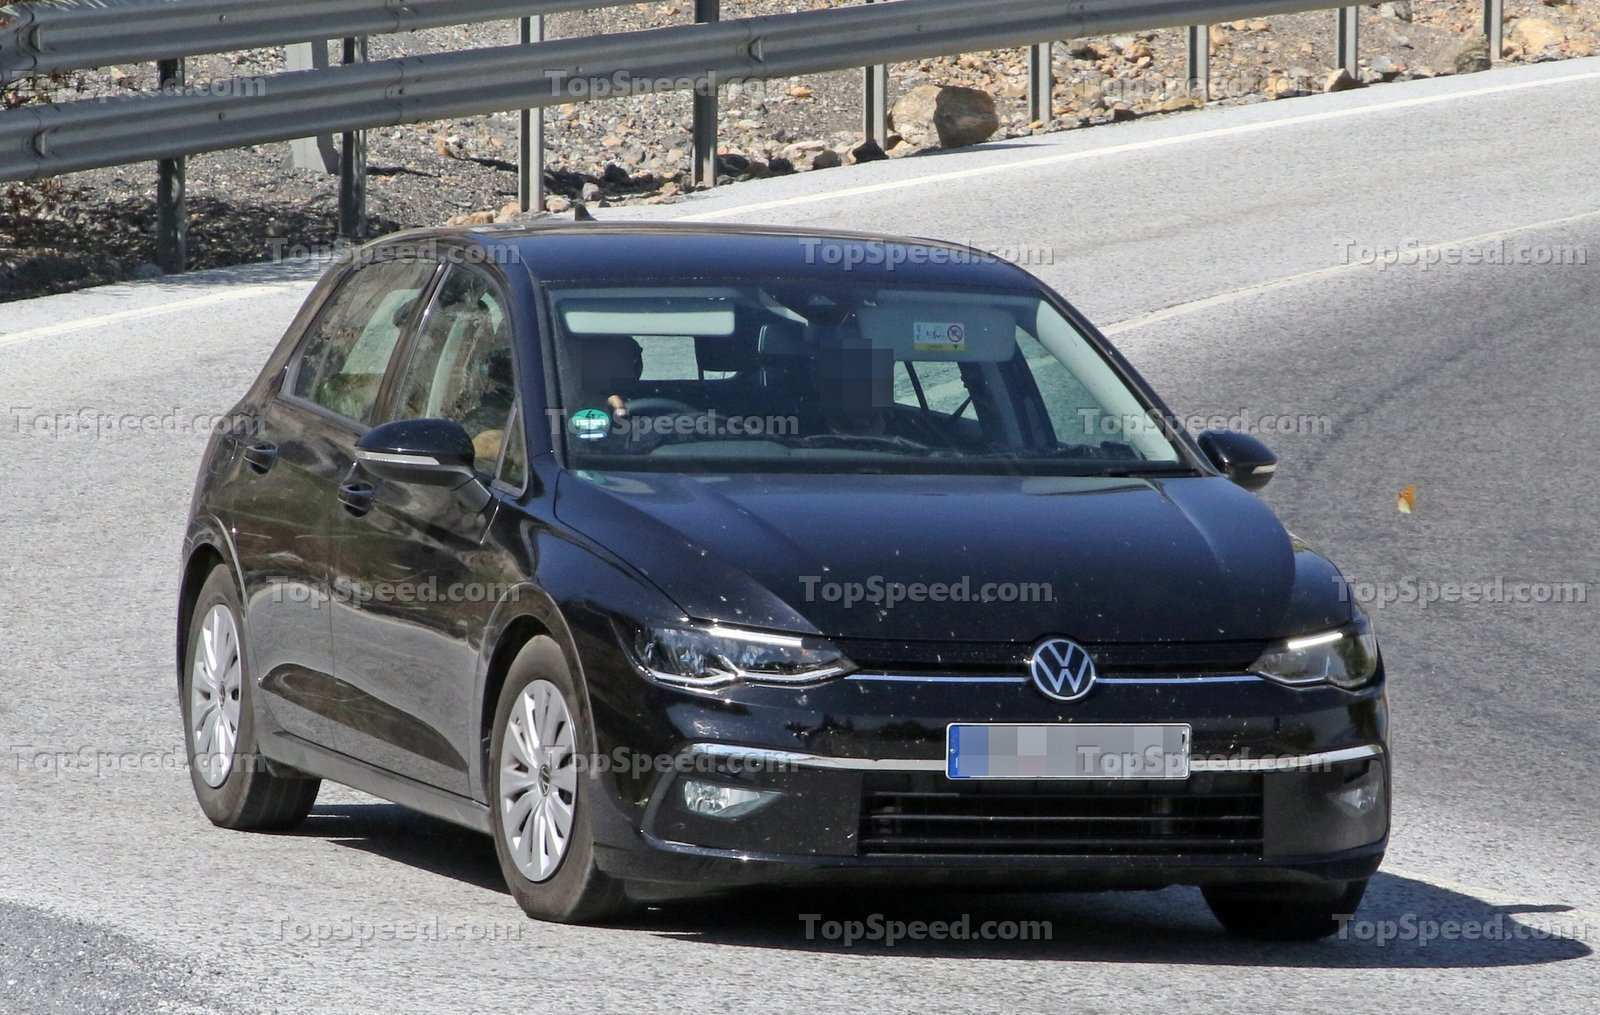 37 A Volkswagen Pay In 2020 Offer New Model And Performance